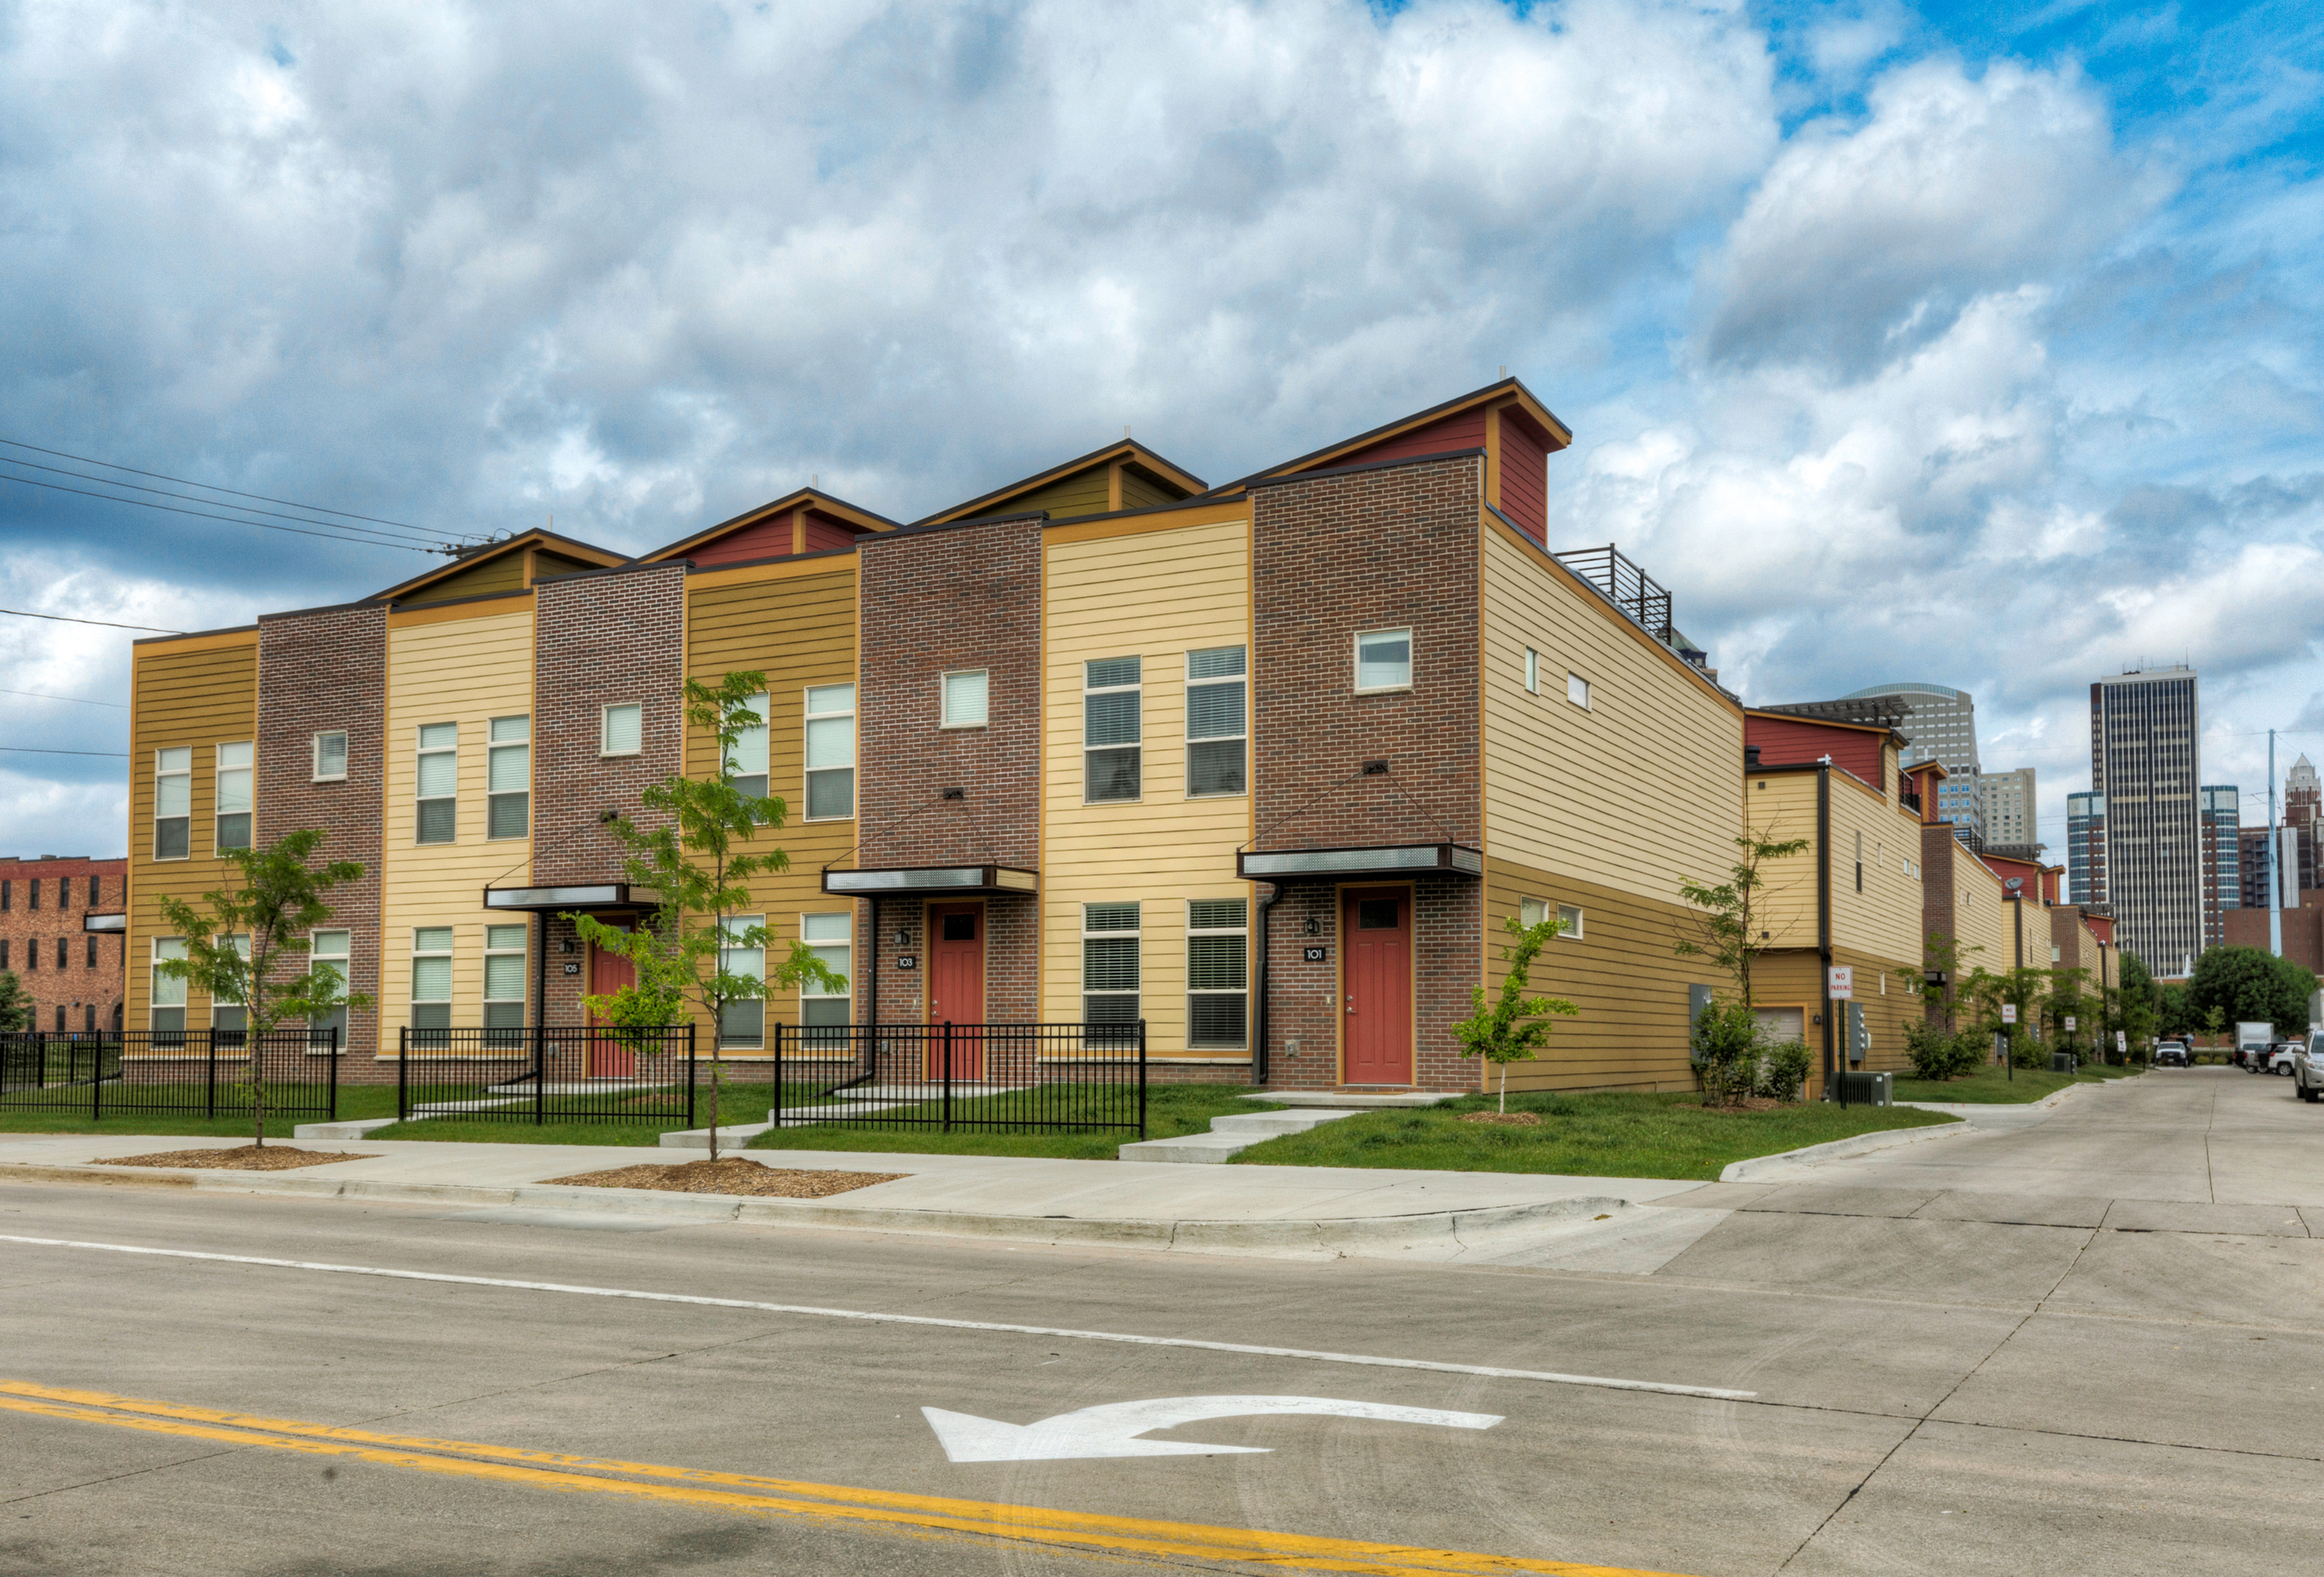 Apartments Near DMACC 7th Street Brownstones for Des Moines Area Community College Students in Des Moines, IA